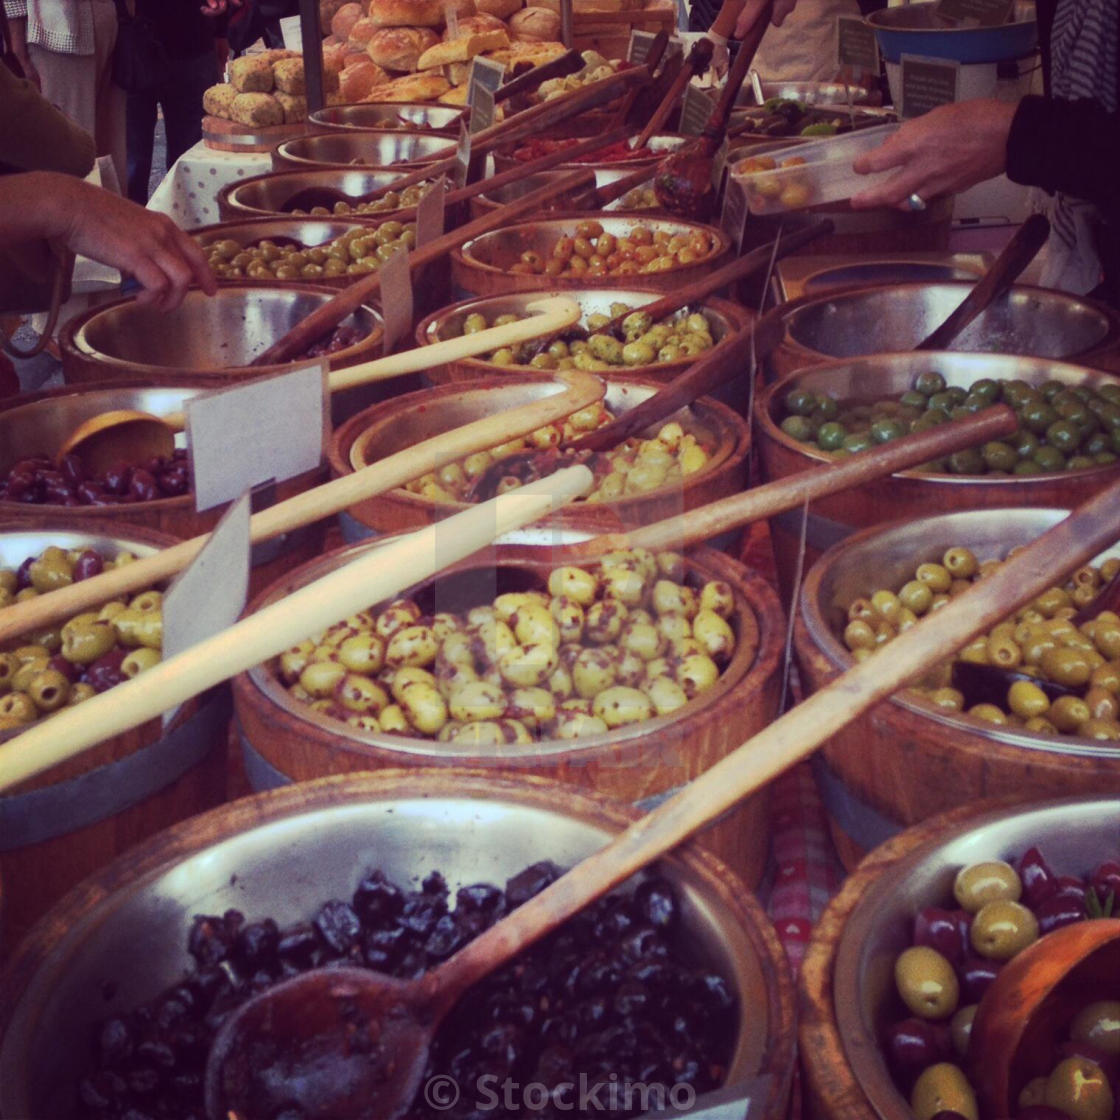 """""""Olives for sale on a market stall at Stroud farmers market, Gloucestershire, UK"""" stock image"""